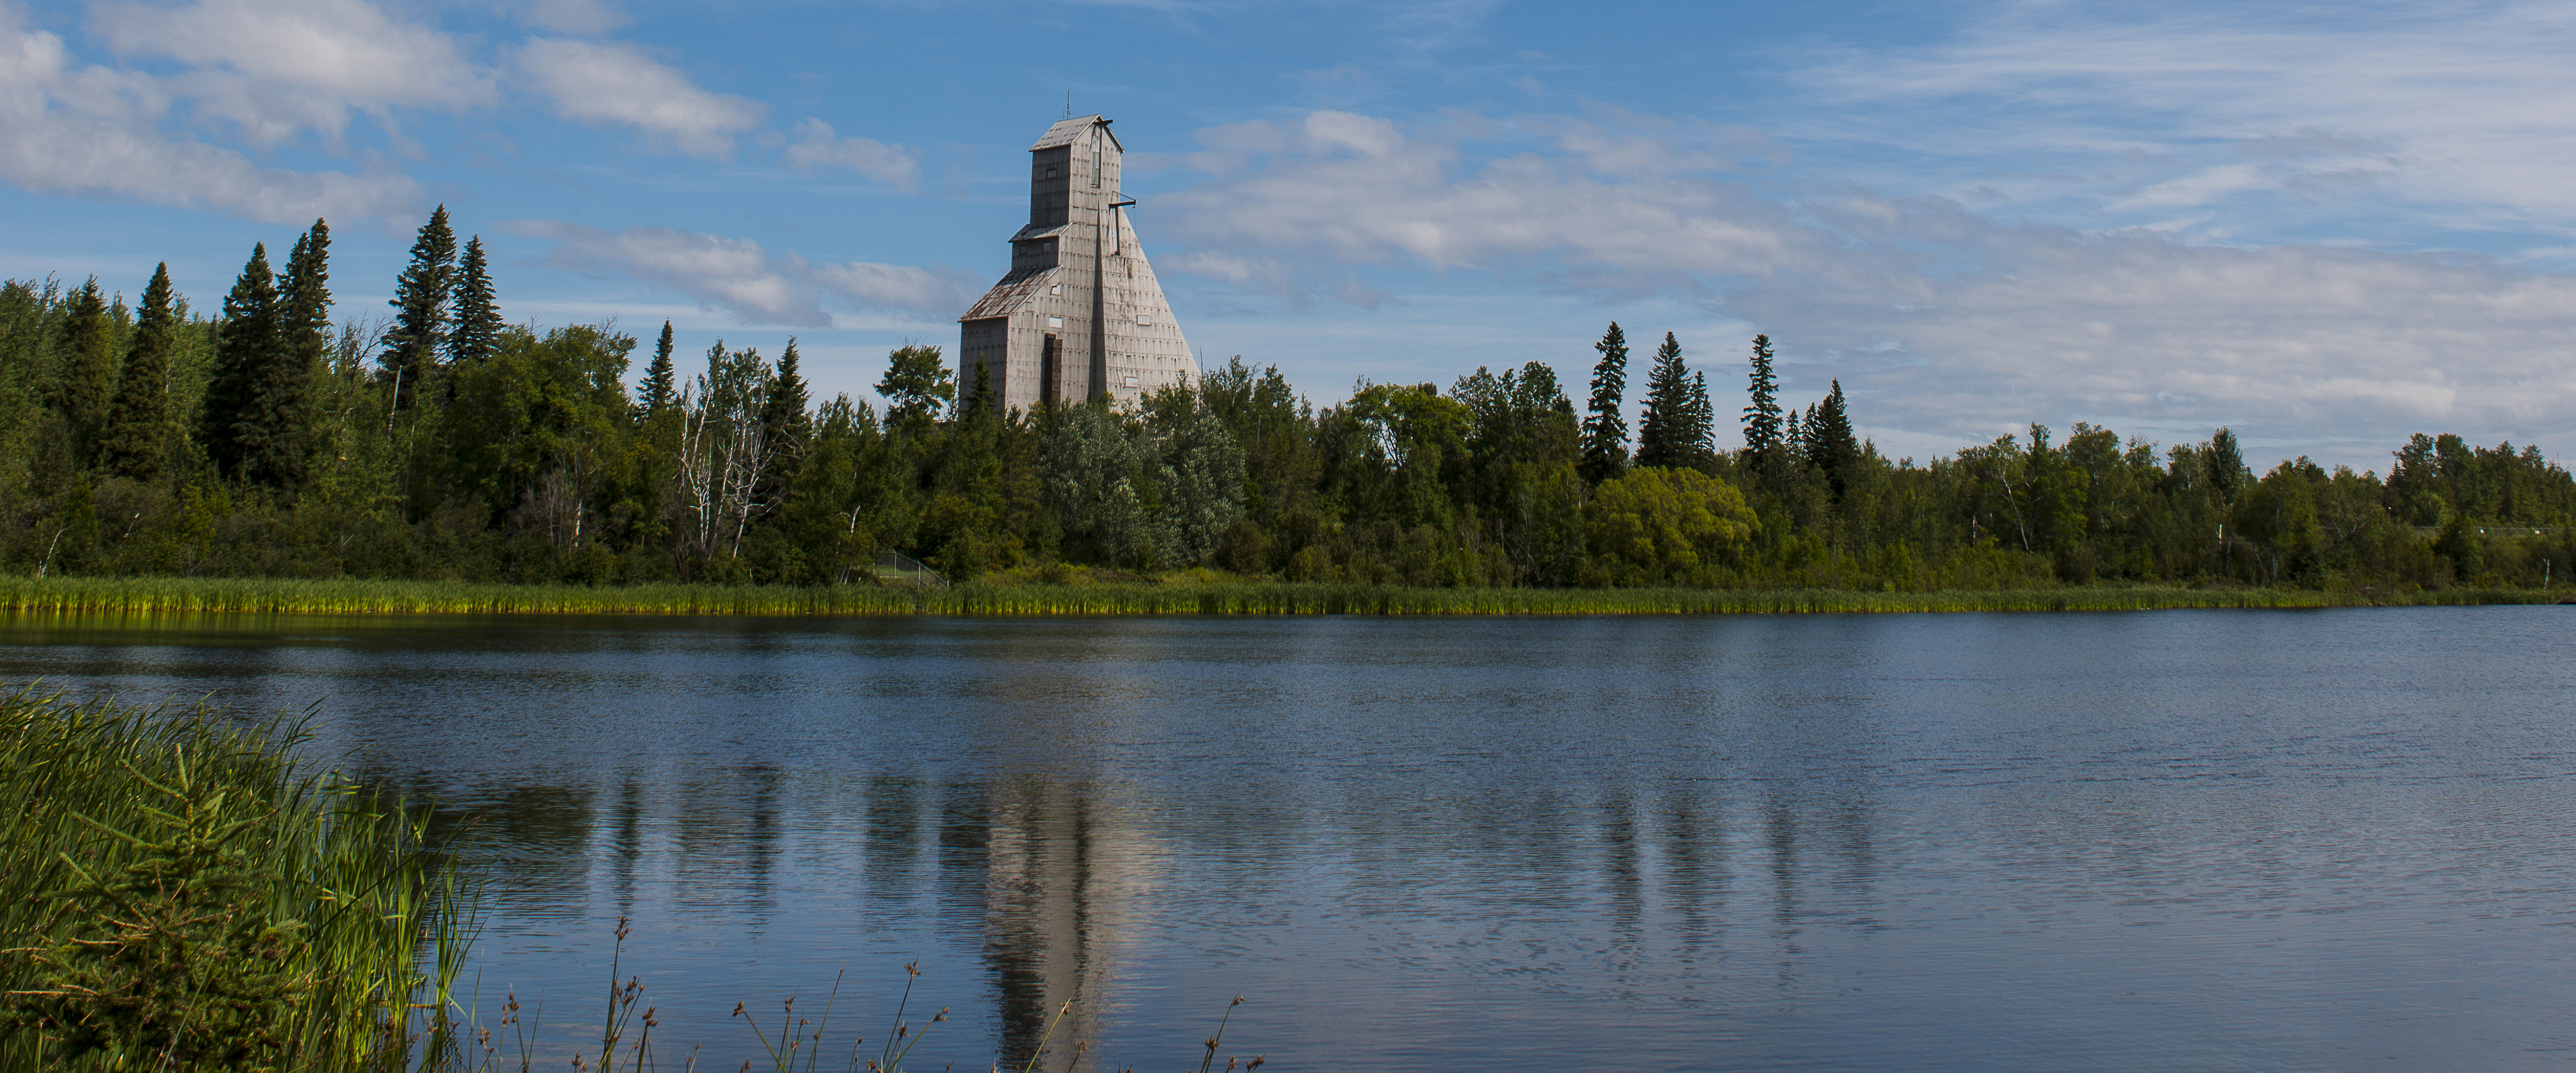 Photo of a lake in Timmins, Ontario, with a mine headframe in the background.